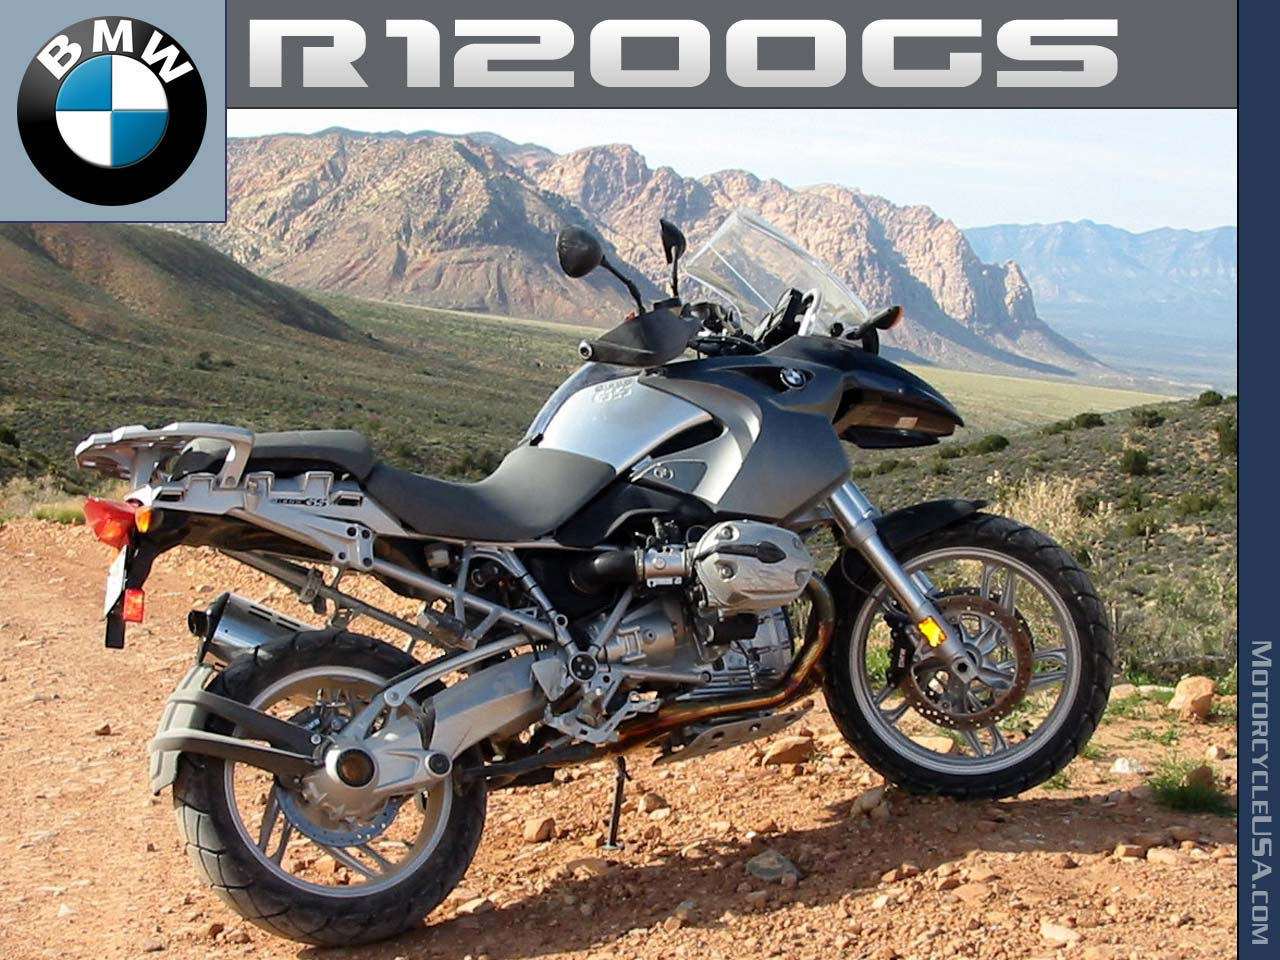 BMW R1200GS 2006 images #77992